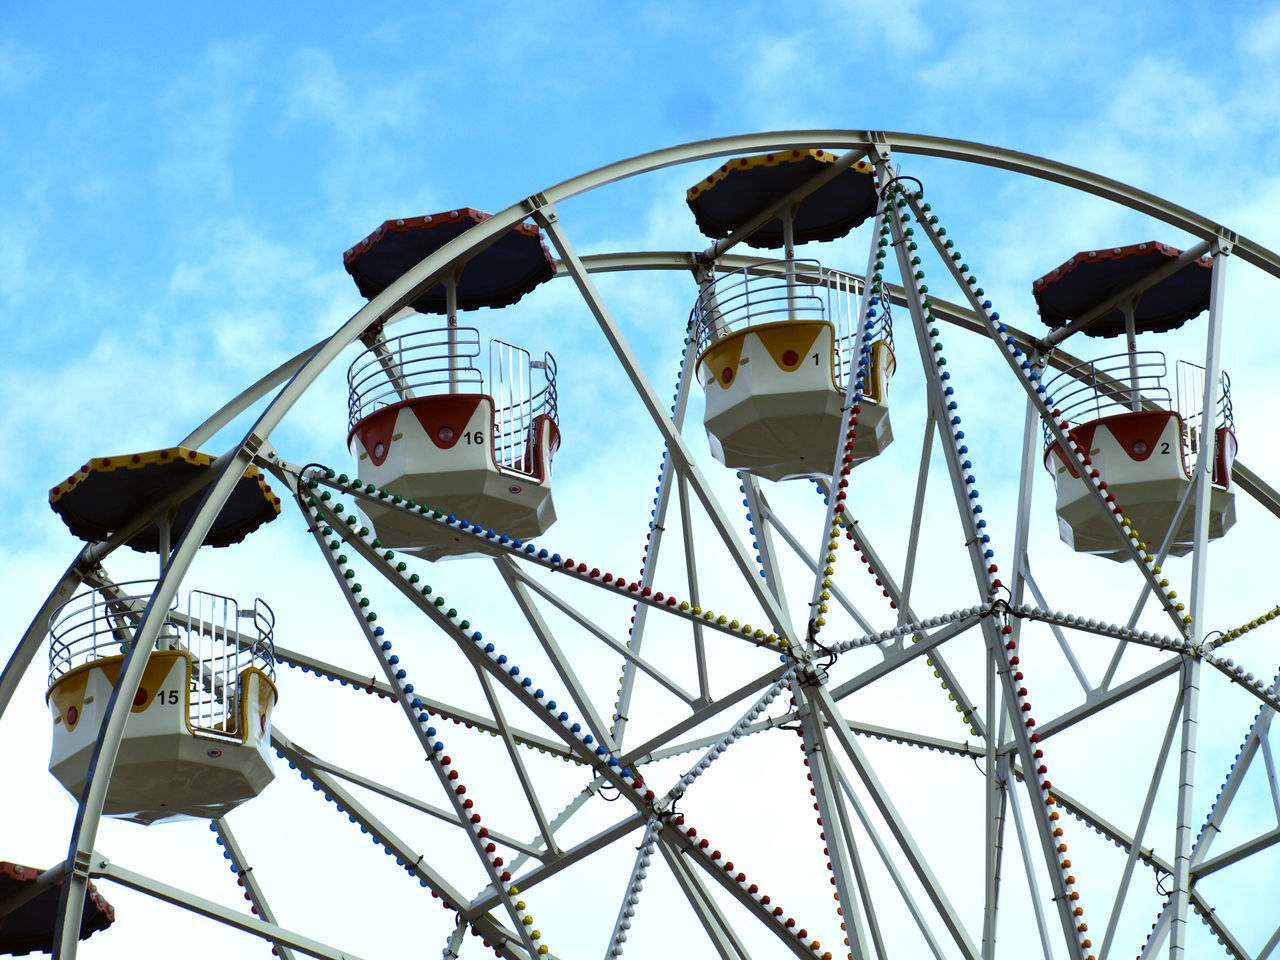 Amusement Park Amusement Park Ride Arts Culture And Entertainment Blue Cloud - Sky Day Enjoyment Ferris Wheel Ferry Wheel Fun Low Angle View No People Outdoors Sky Traveling Carnival